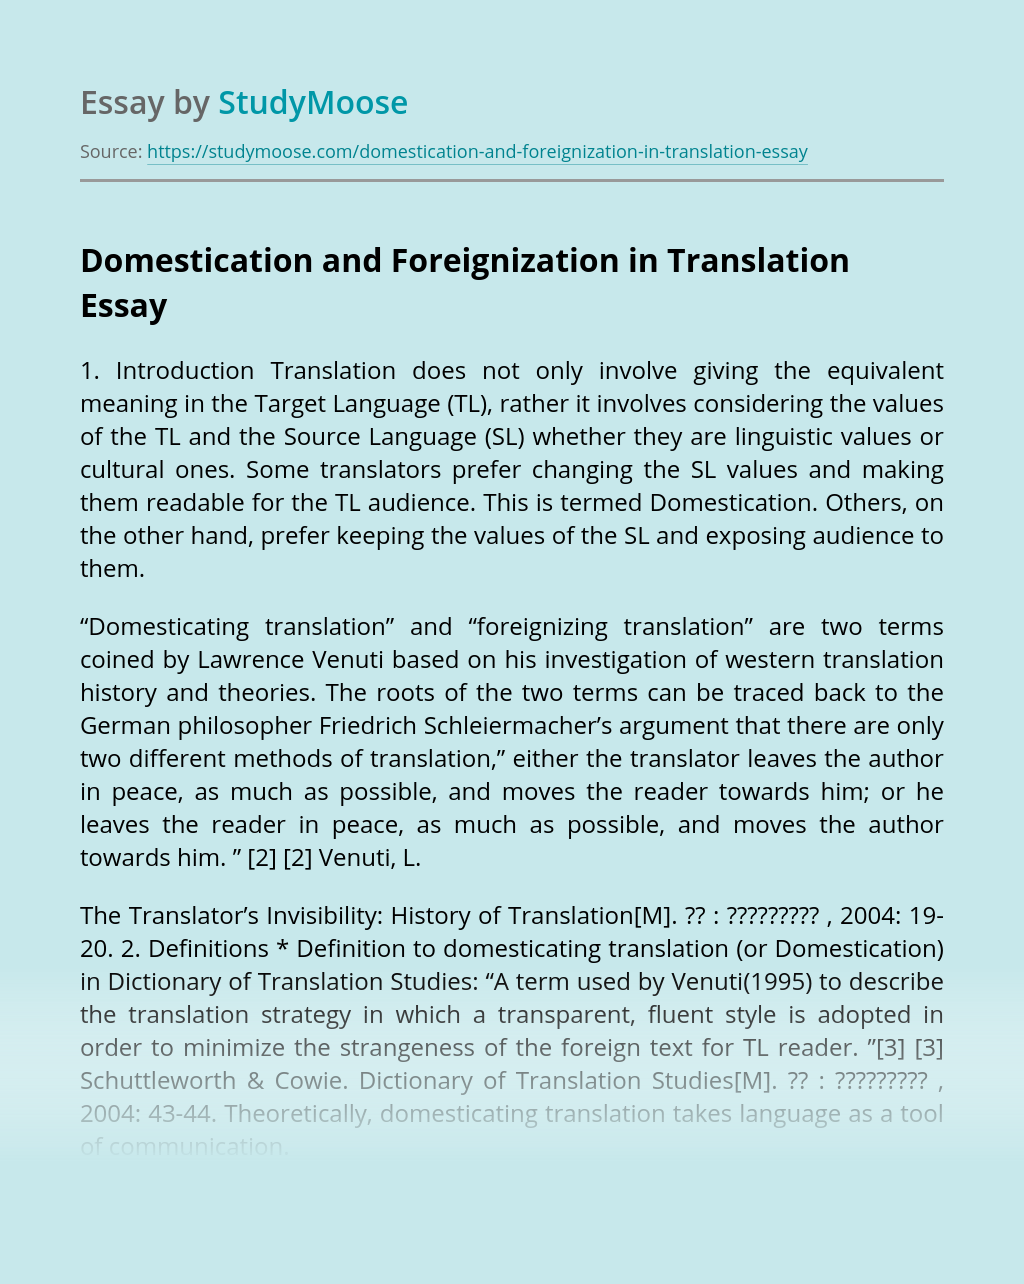 Domestication and Foreignization in Translation